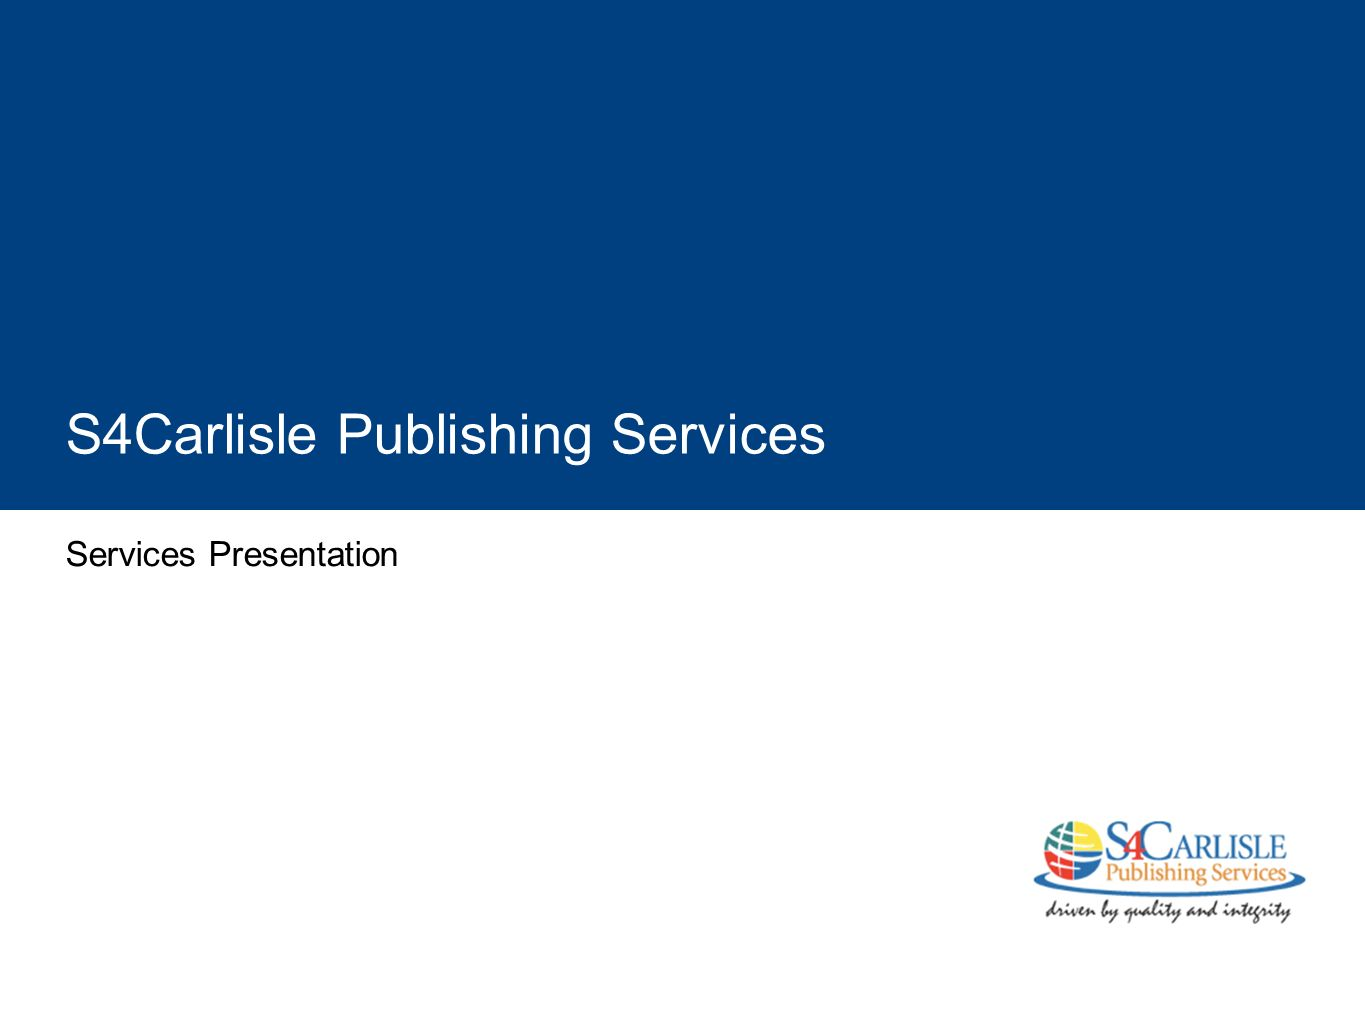 S4Carlisle Publishing Services